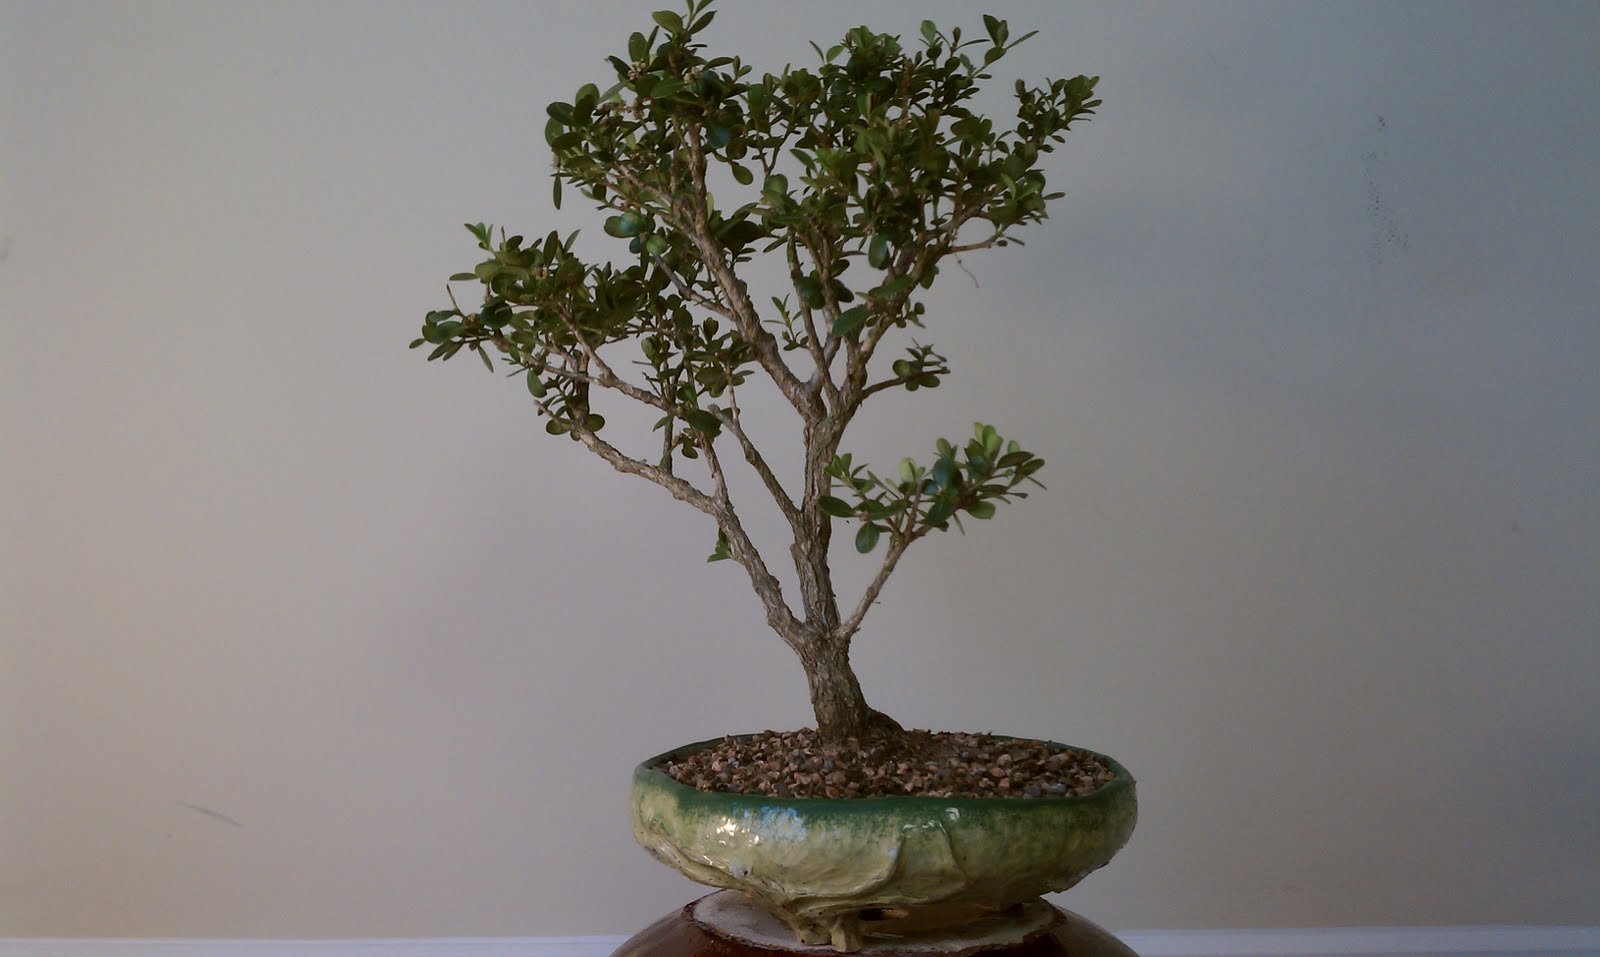 Bodhisattva Bonsai Japanese Boxwood Bonsai Gets Needed Springtime